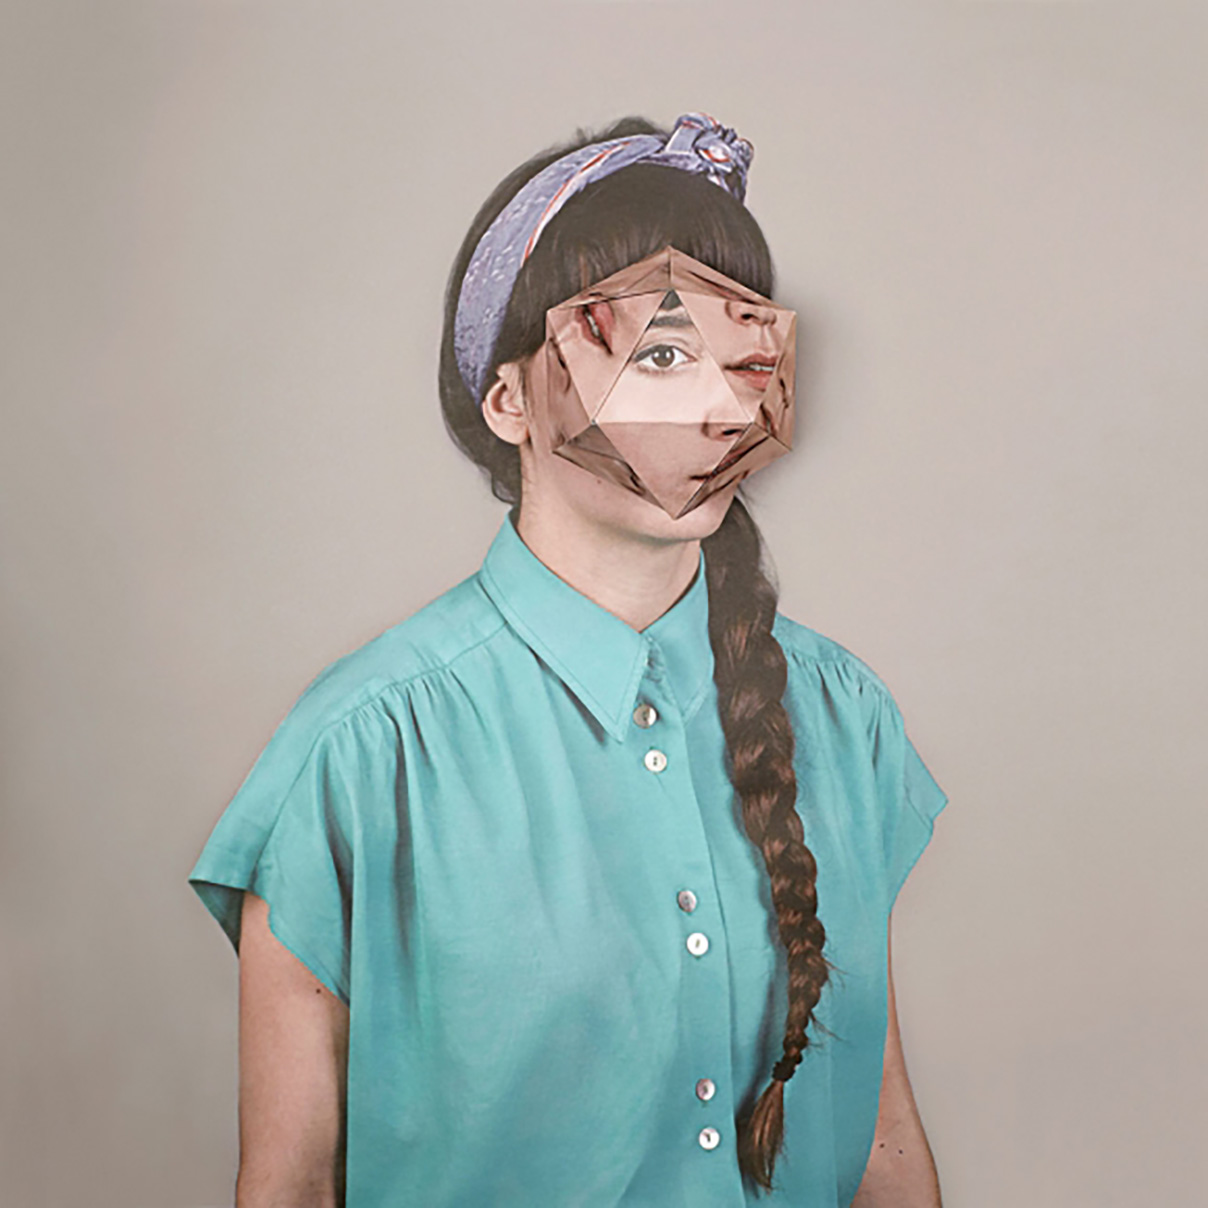 Cosmic Surgery: Origami Portraits by Alma Haser